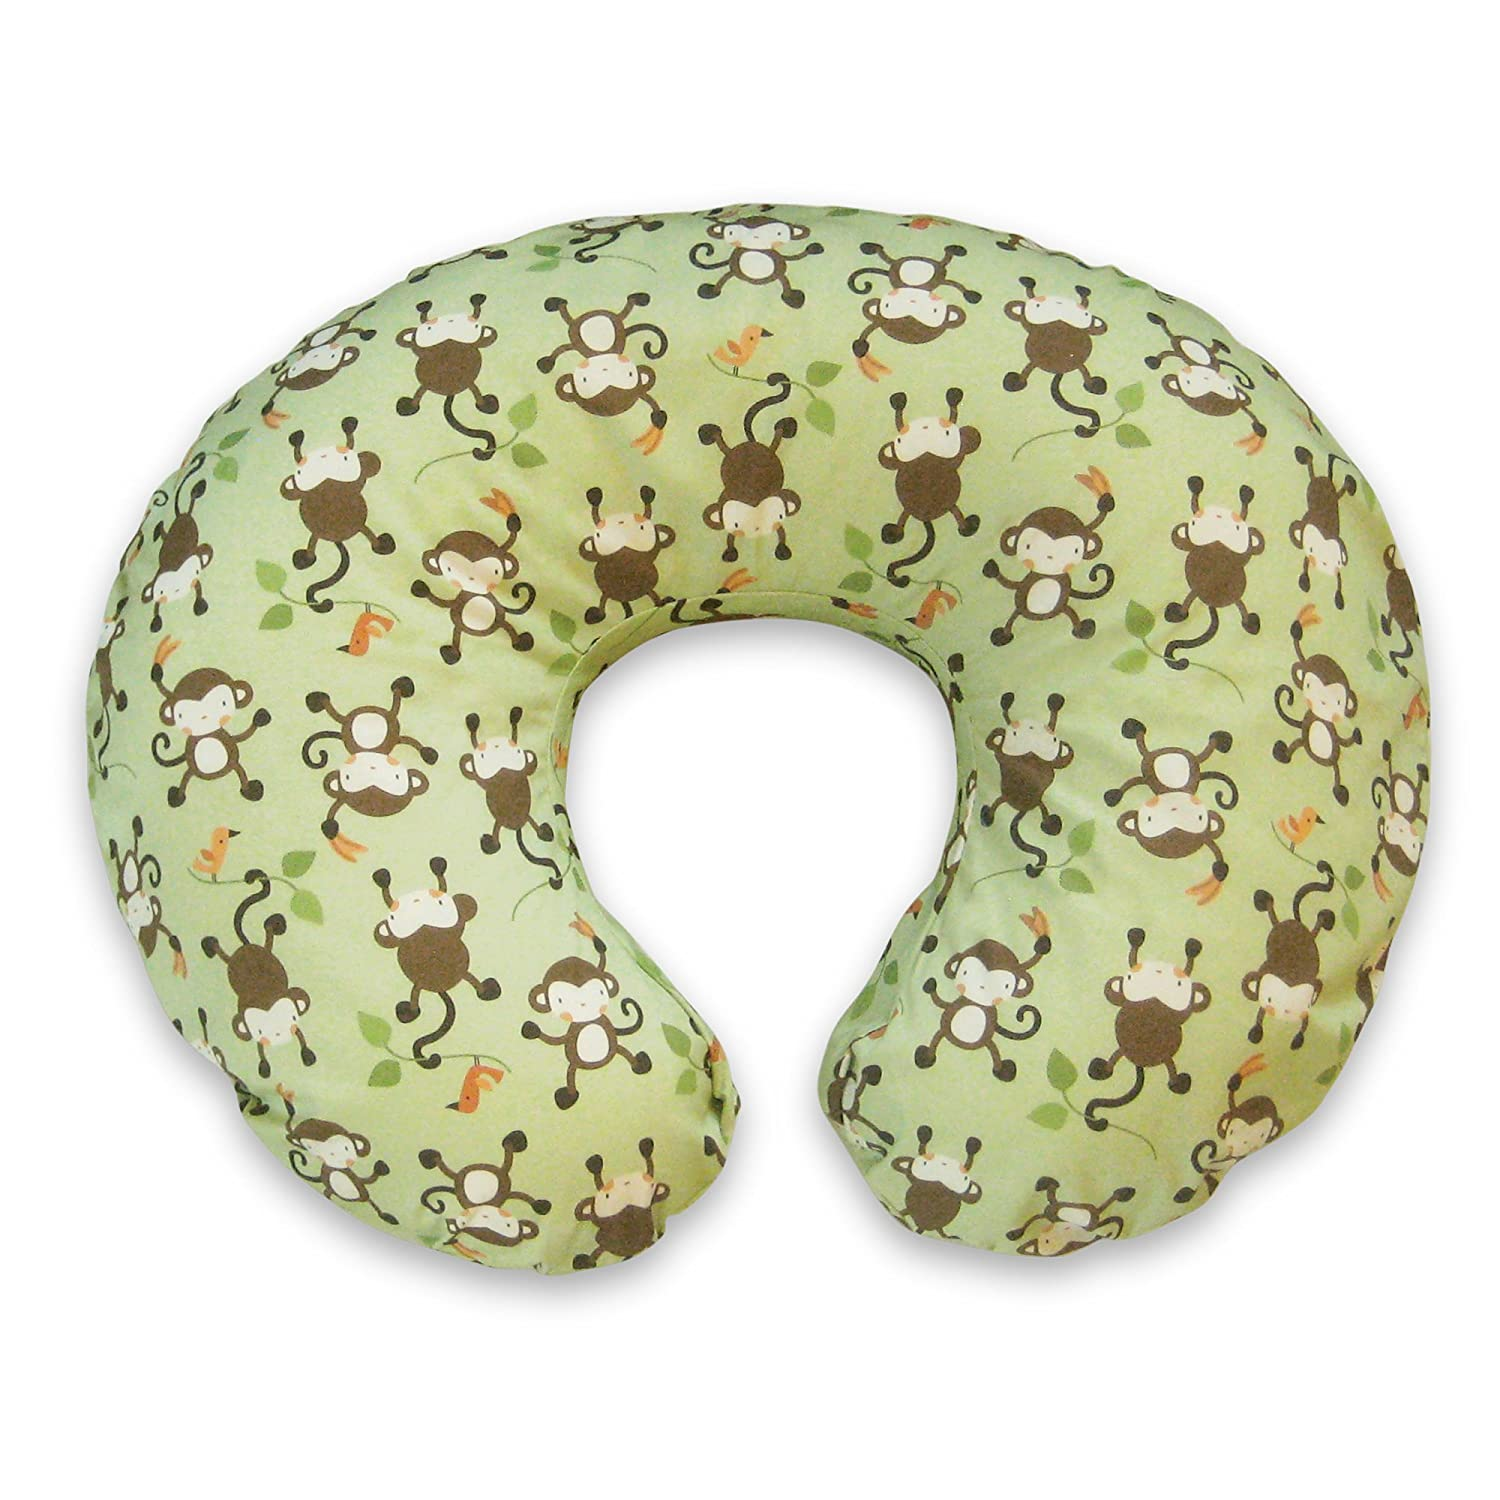 Boppy Pillow Slipcover, Classic Monkey Business/Green 3100121K 6PK